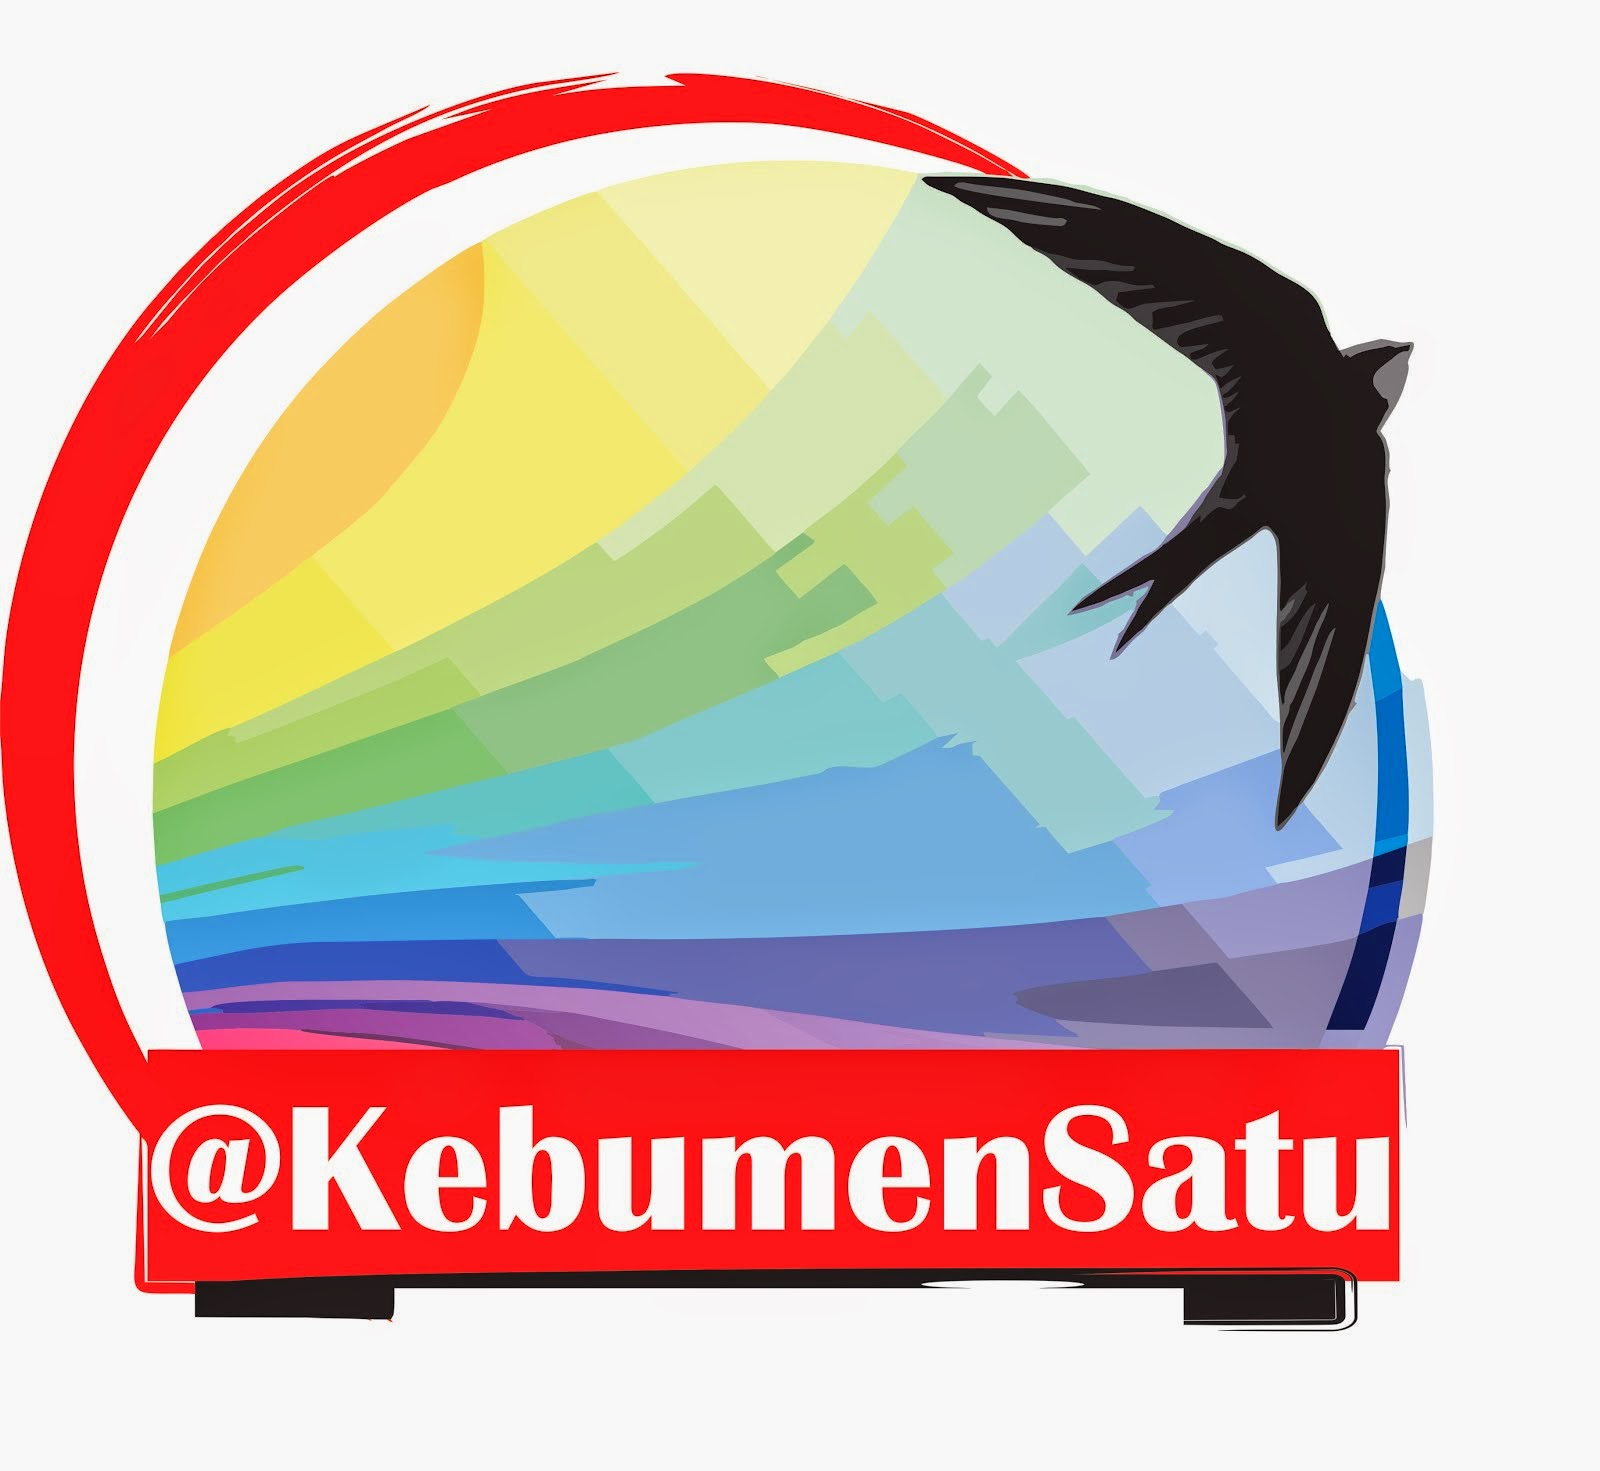 @kebummensatu on twitter